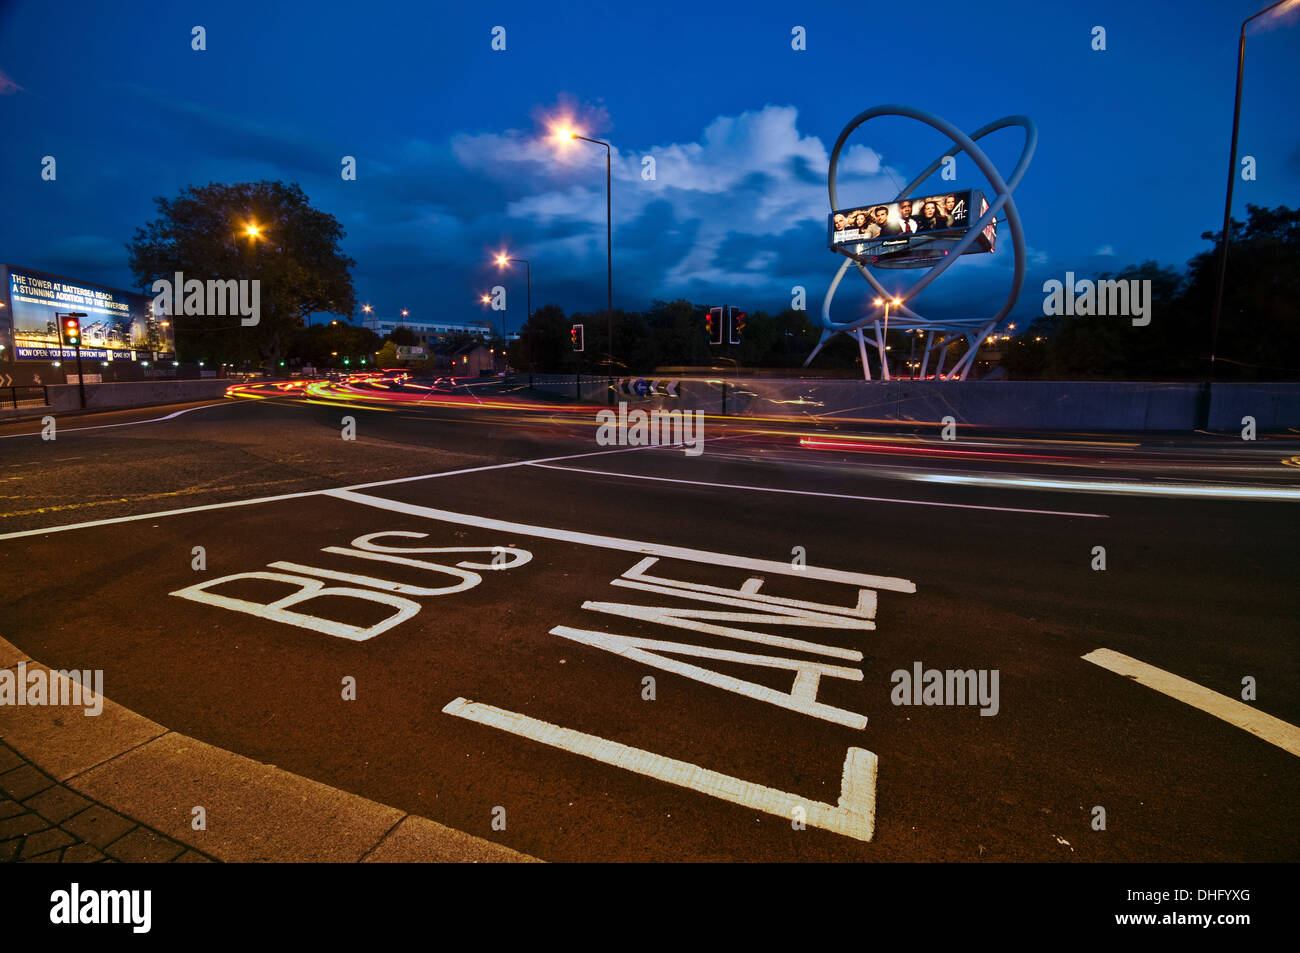 Bus Lane at dusk on a busy roundabout Stock Photo